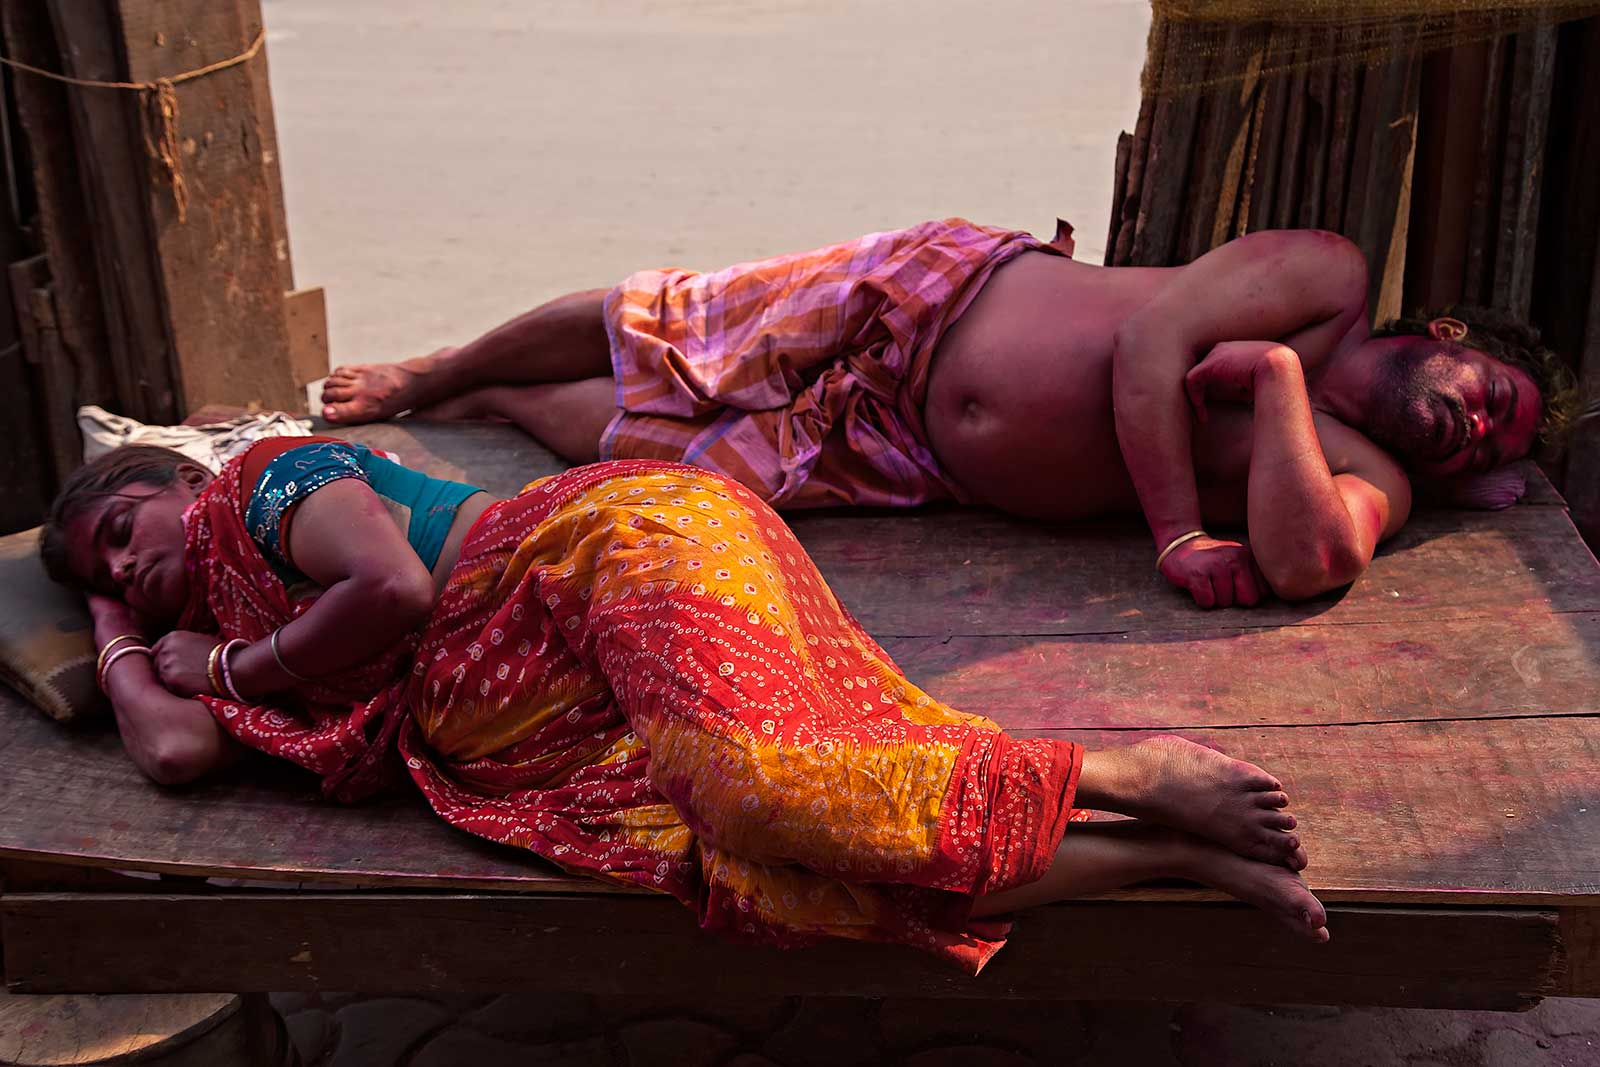 holi-kolkata-india-aftermath-sleeping-people